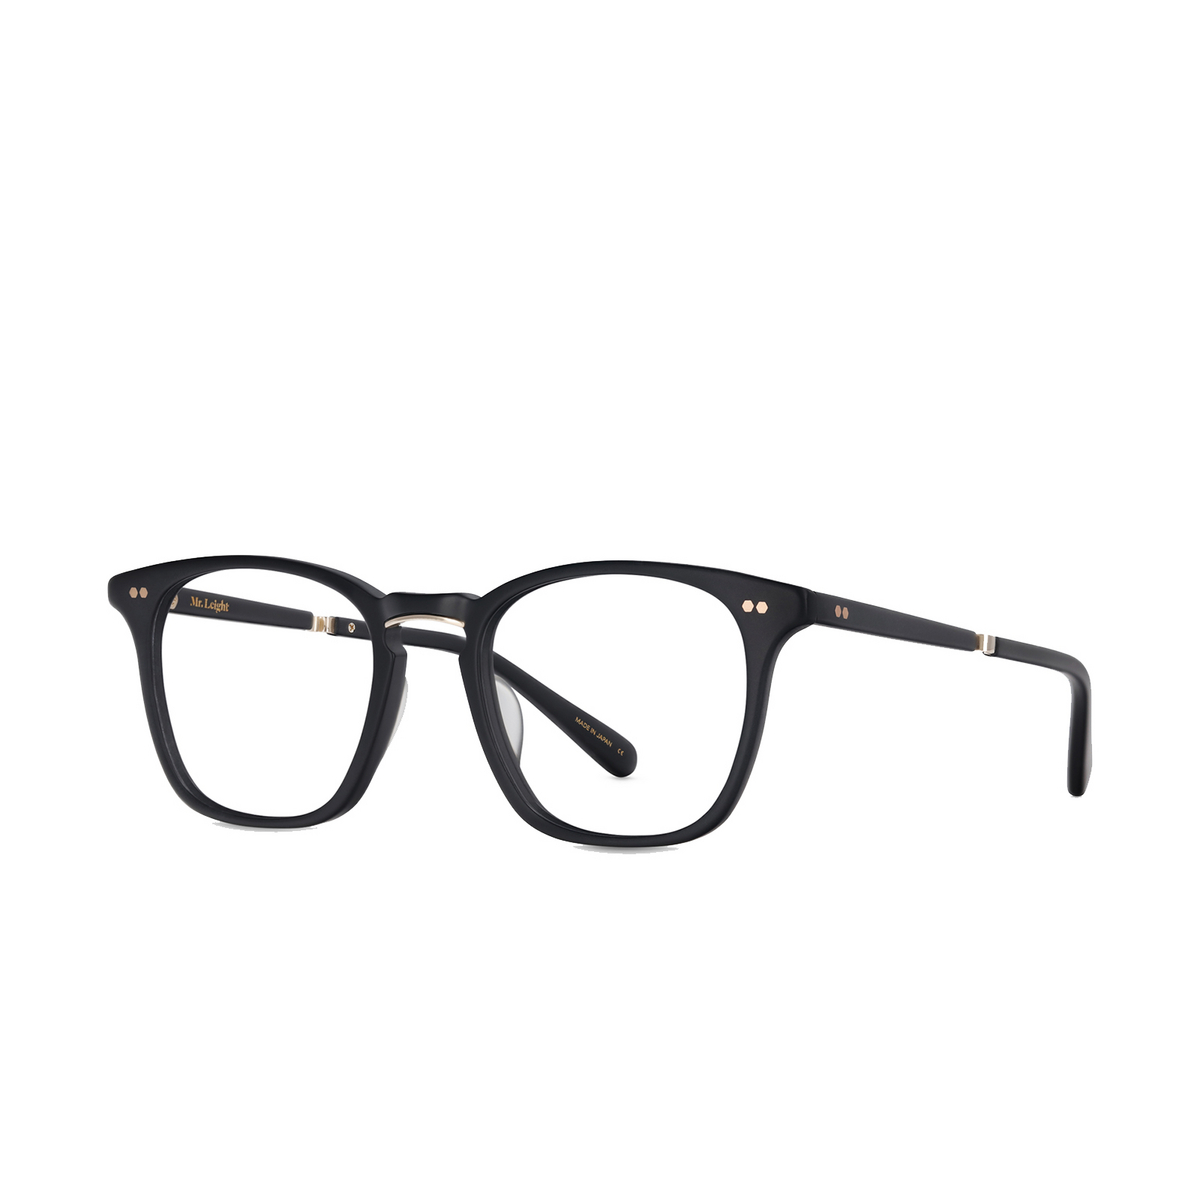 Mr. Leight® Square Eyeglasses: Getty C color MBK-12KWG - three-quarters view.